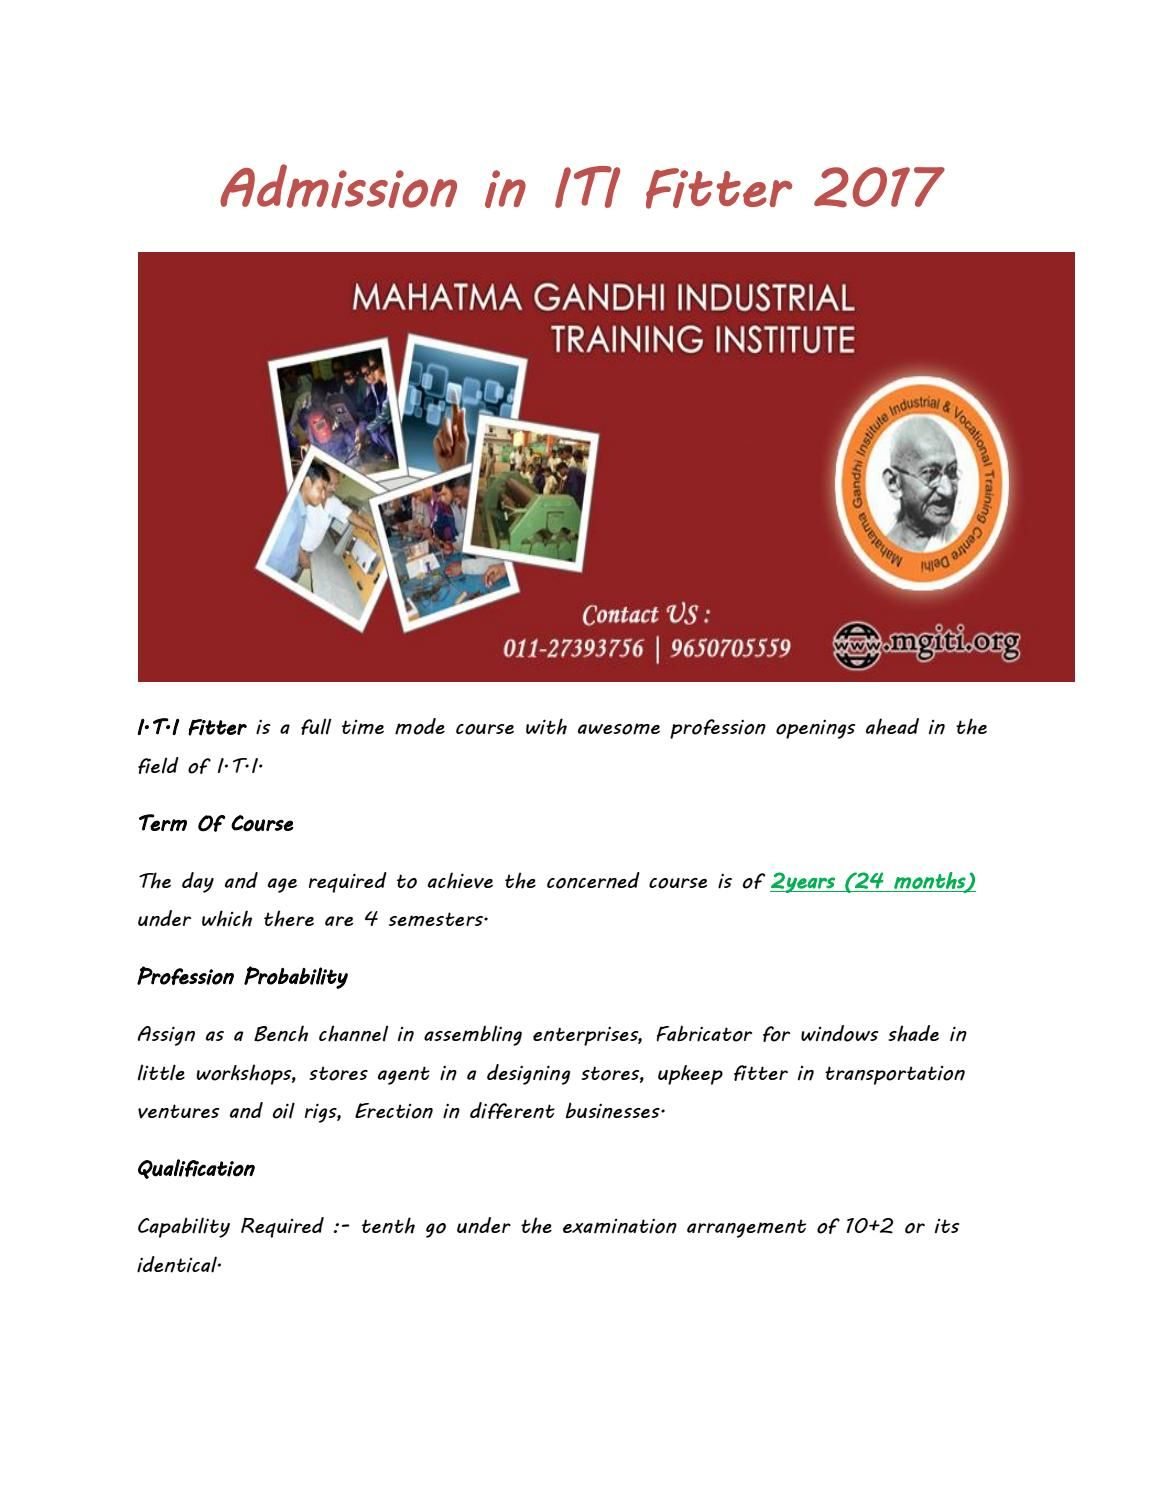 Admission in iti fitter 2017 Admissions, Certificate